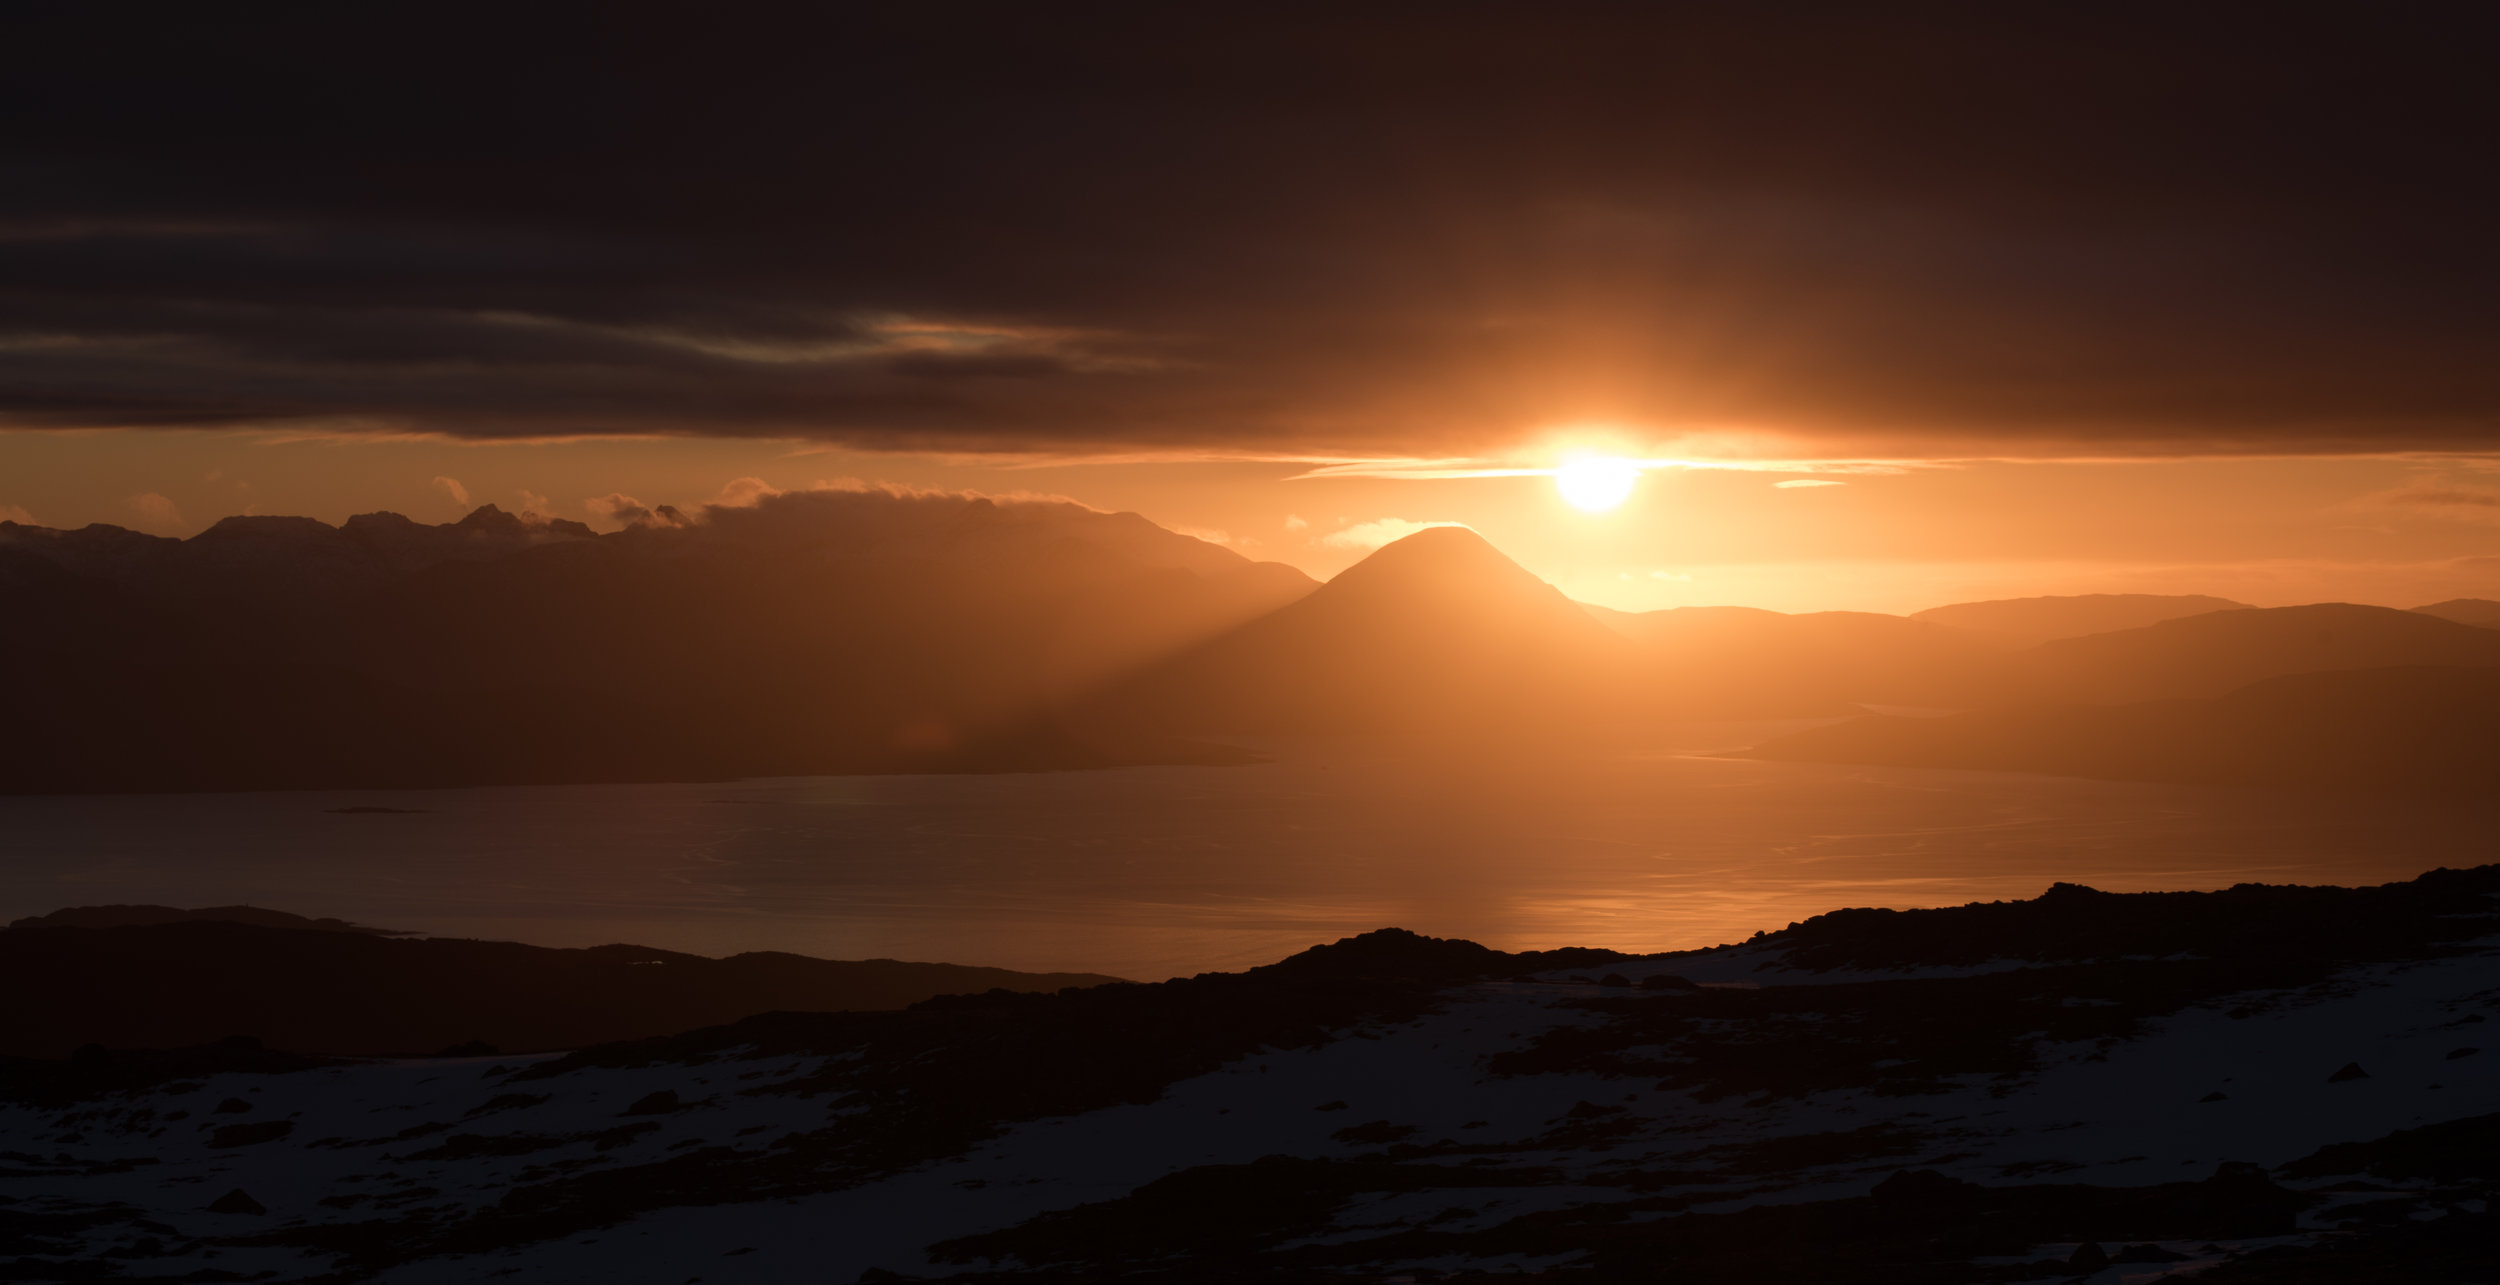 Sunset over Skye by Katherine Fotheringham